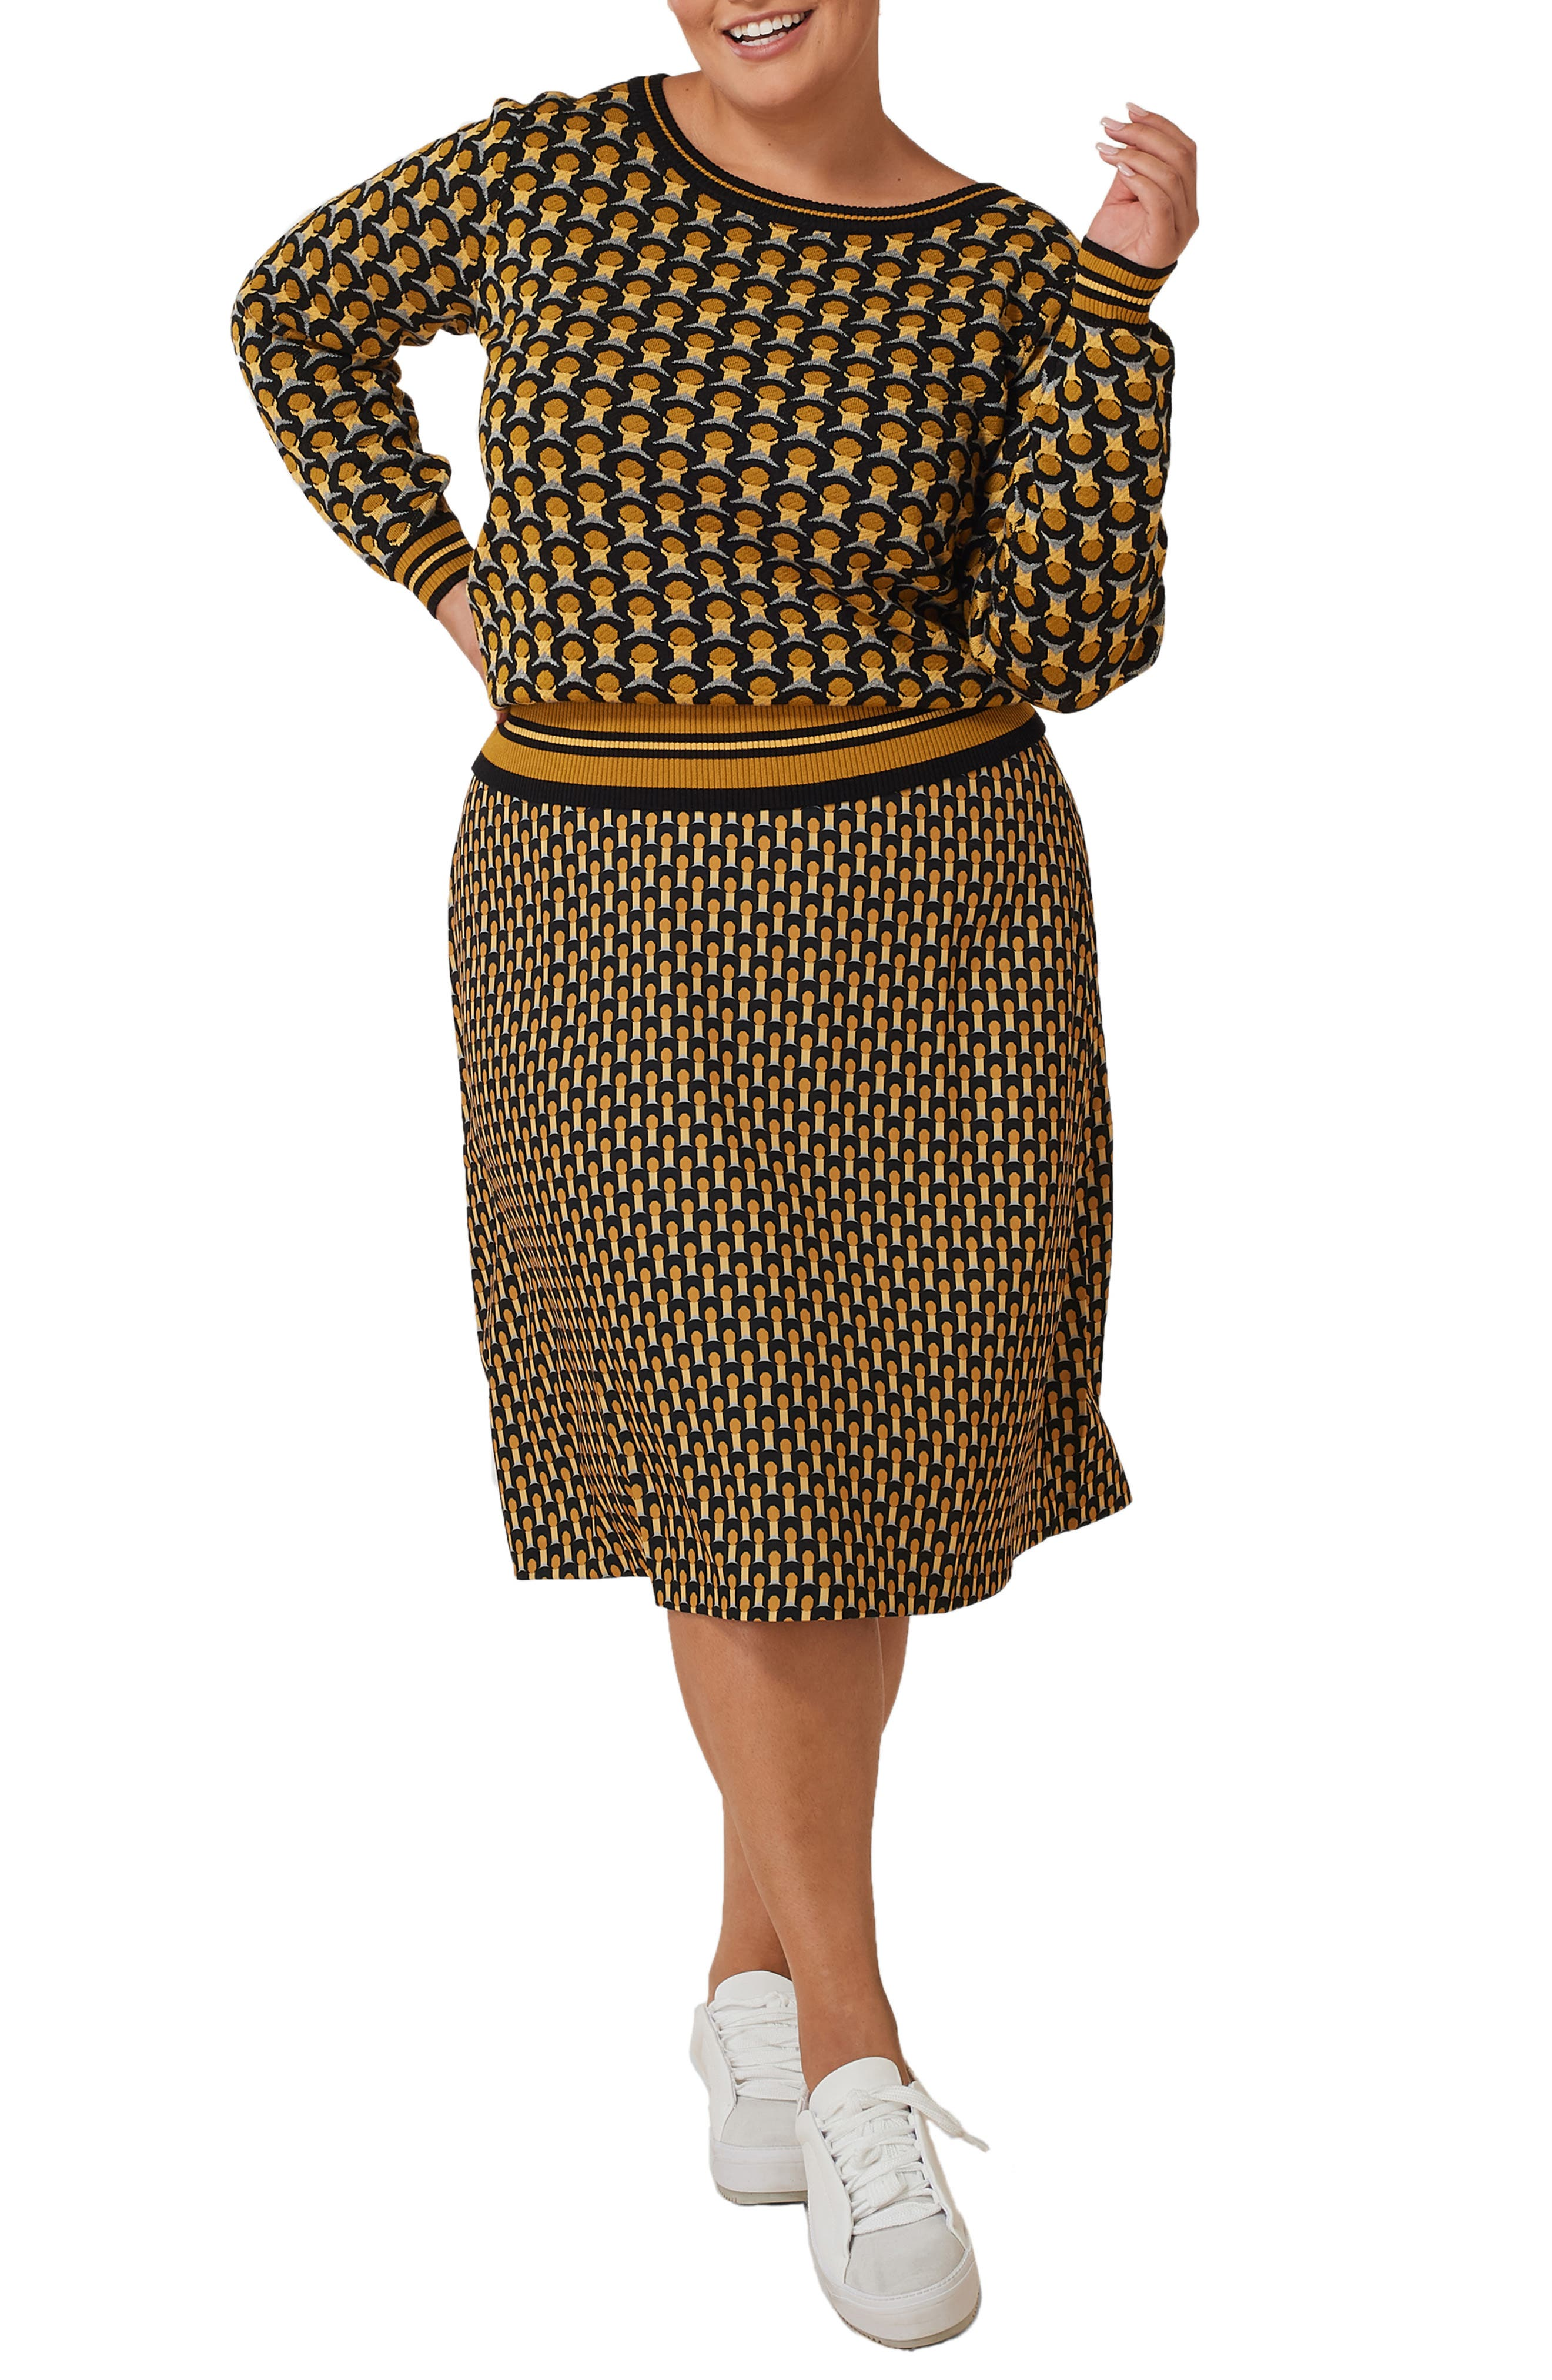 60s 70s Plus Size Dresses, Clothing, Costumes Plus Size Womens Maree Pour Toi Geo Print Sweater  Skirt Set $179.00 AT vintagedancer.com